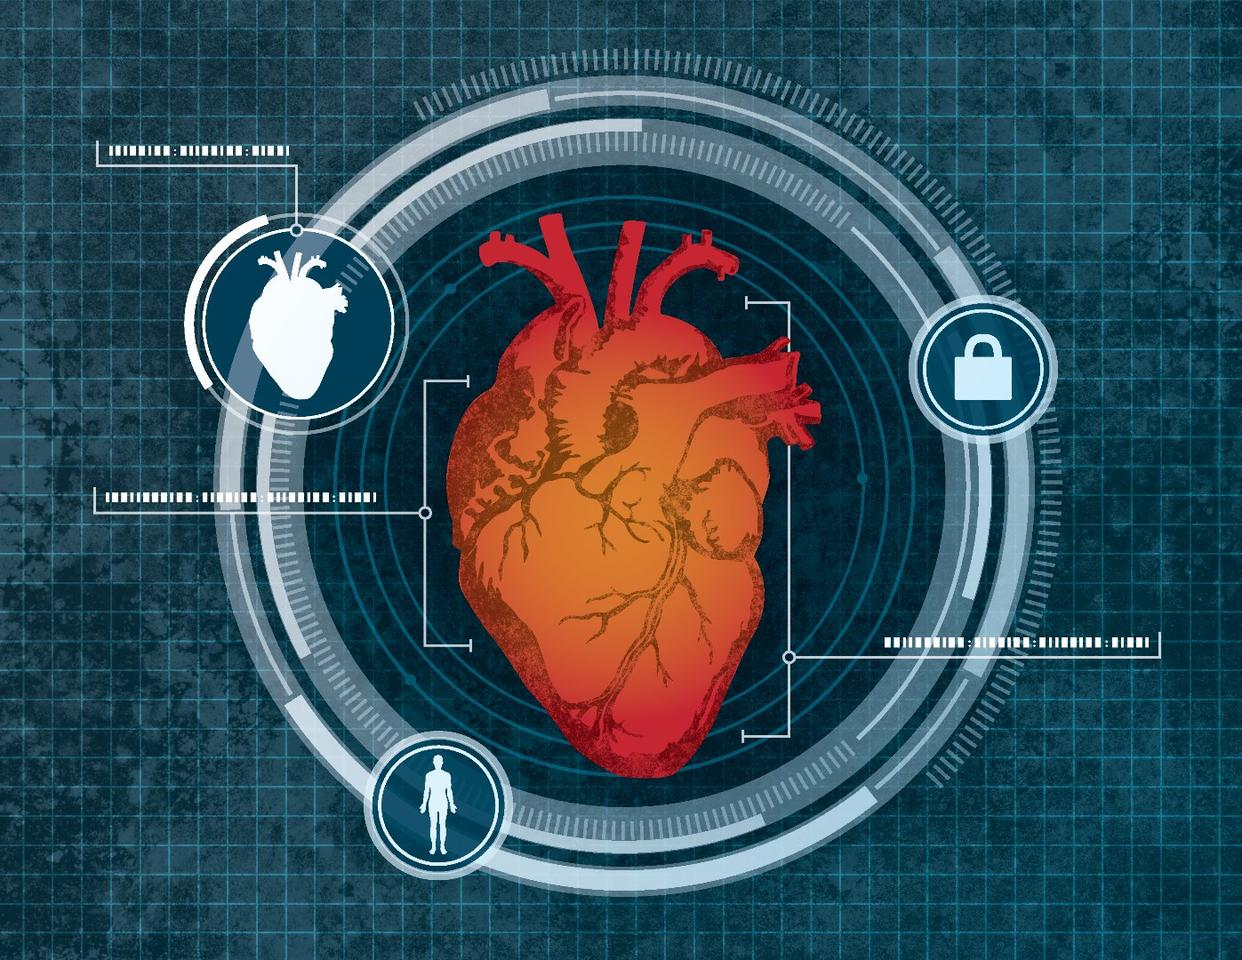 Moving on from fingerprints or facial scanning, a new security system identifies a user's unique heart geometry